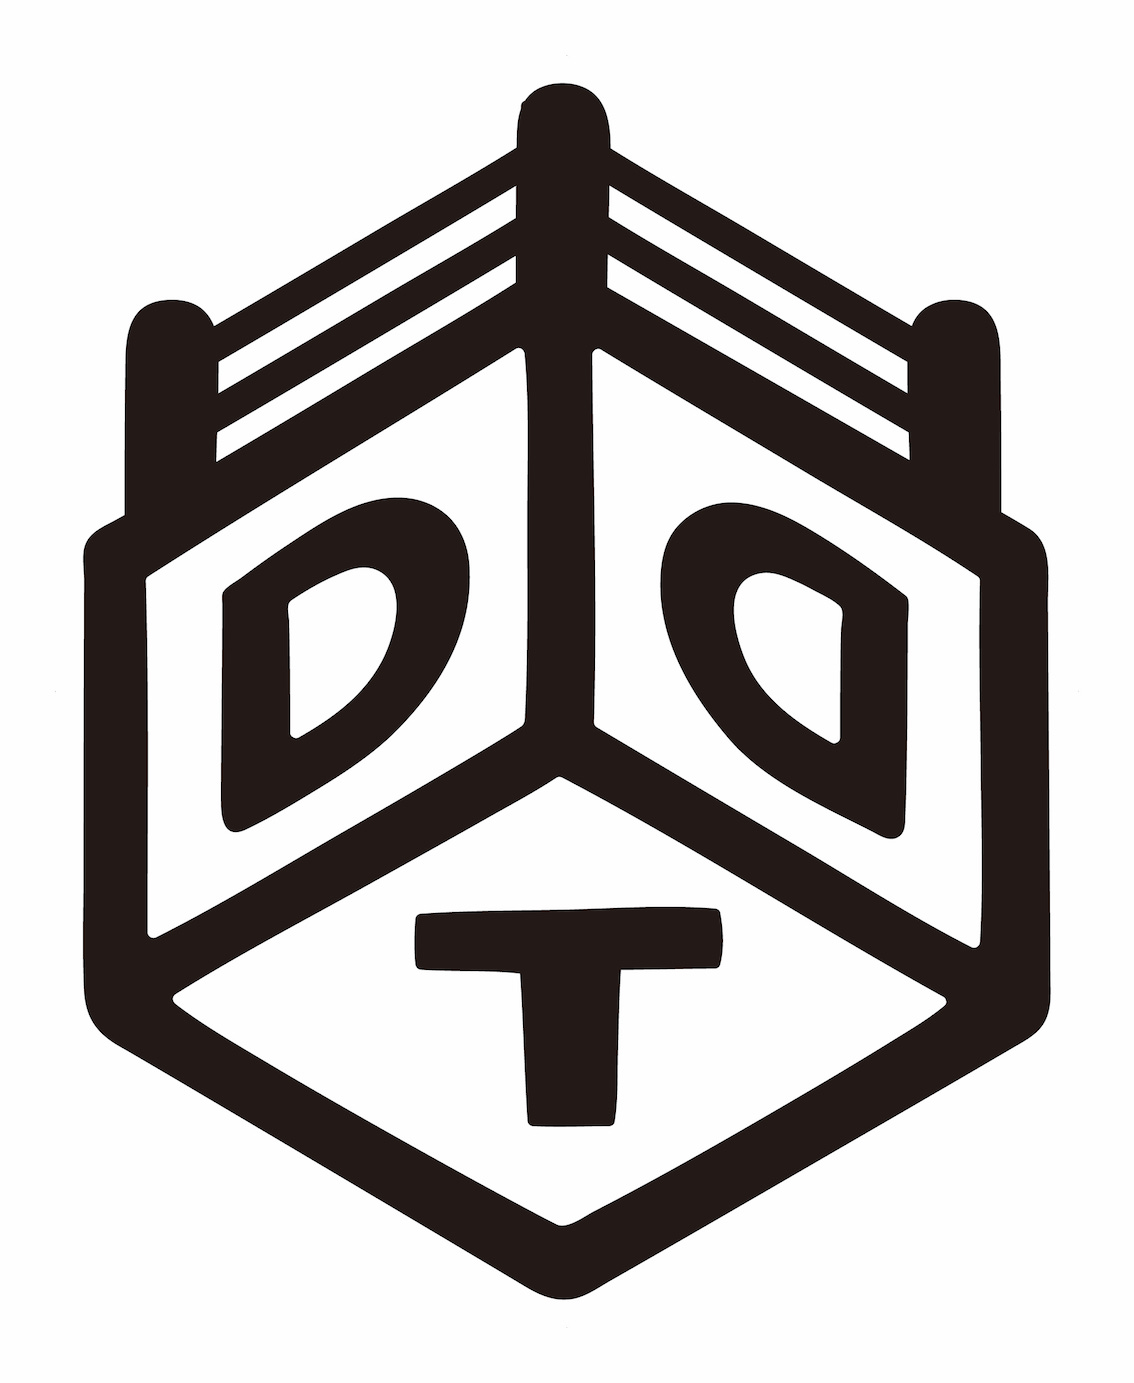 Ddt logo fix2